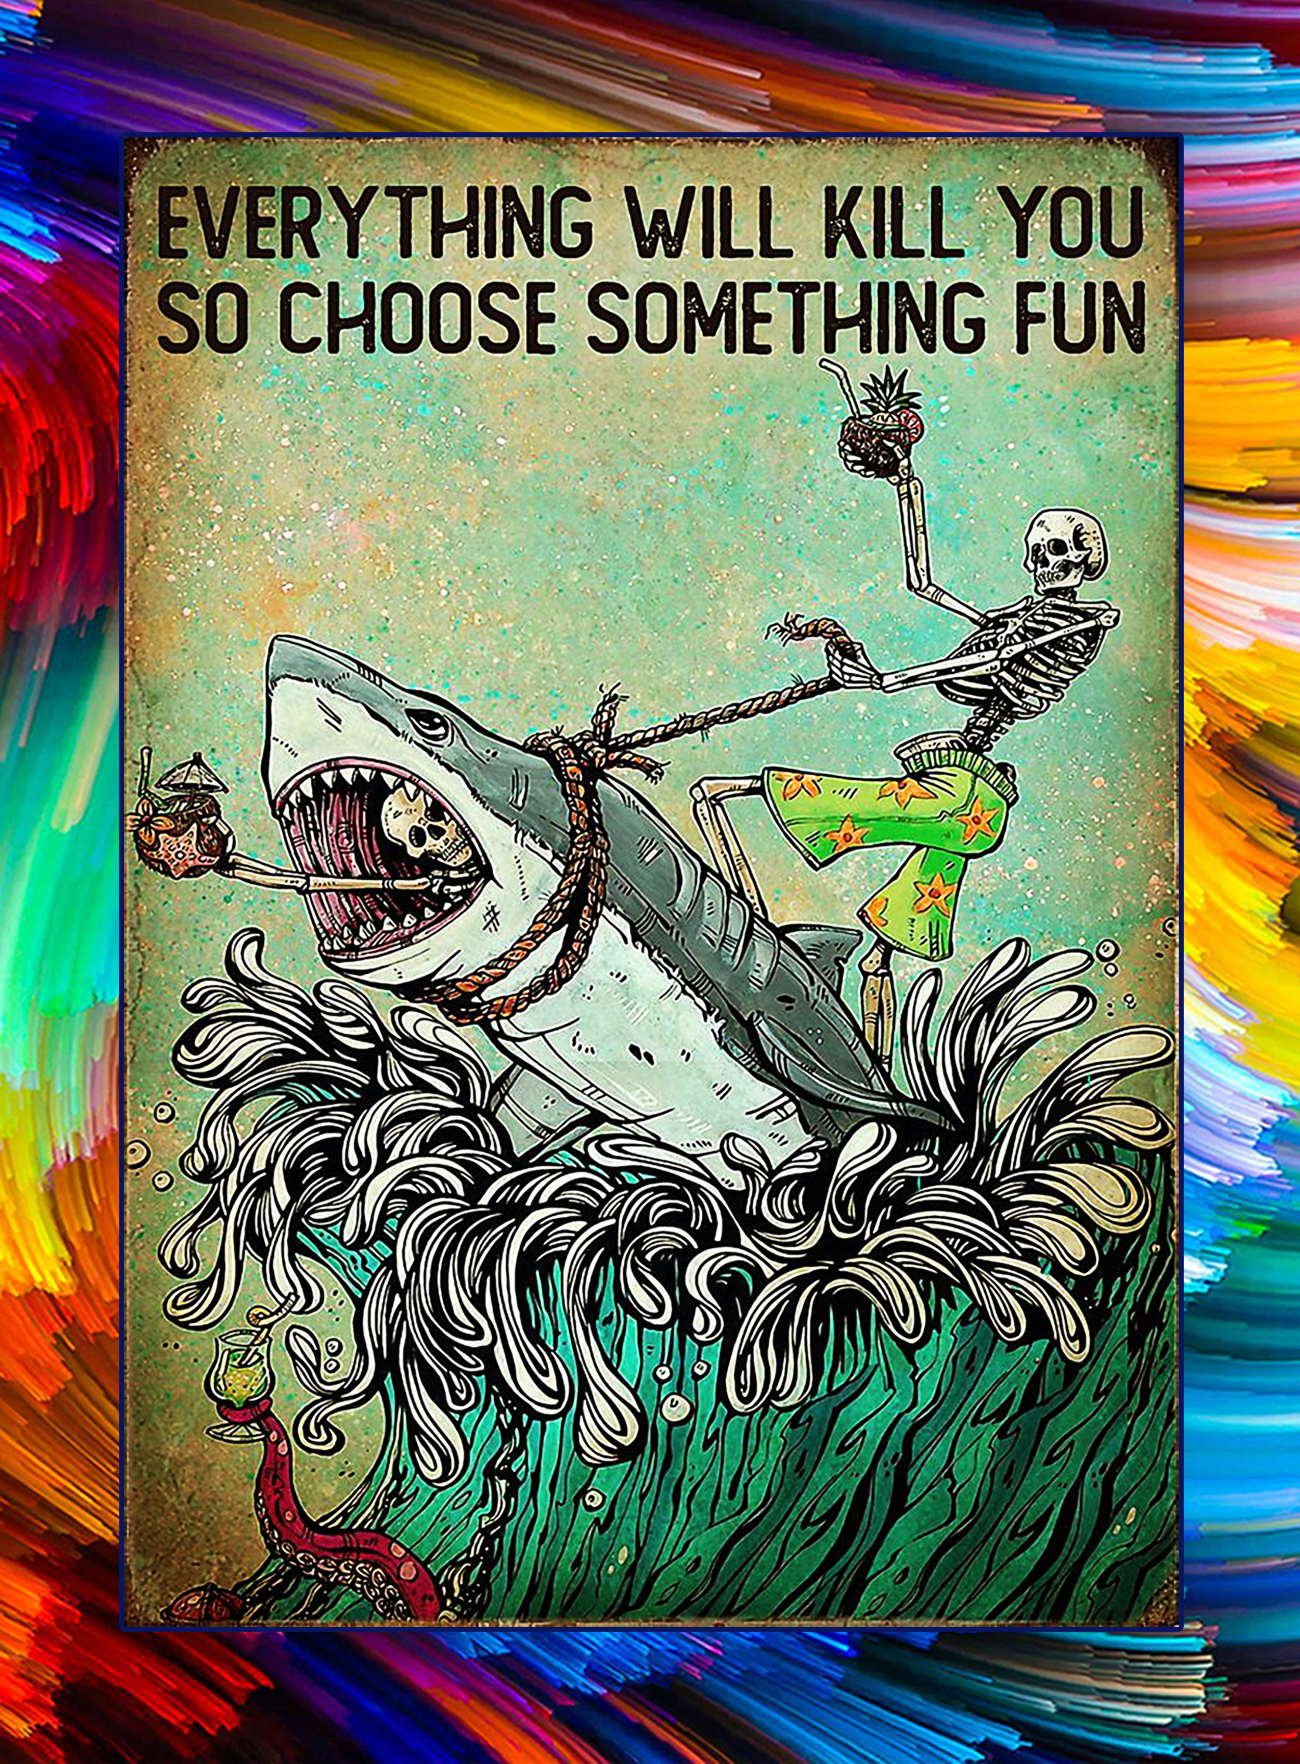 Skeleton shark everything will kill you so choose something fun poster - A1